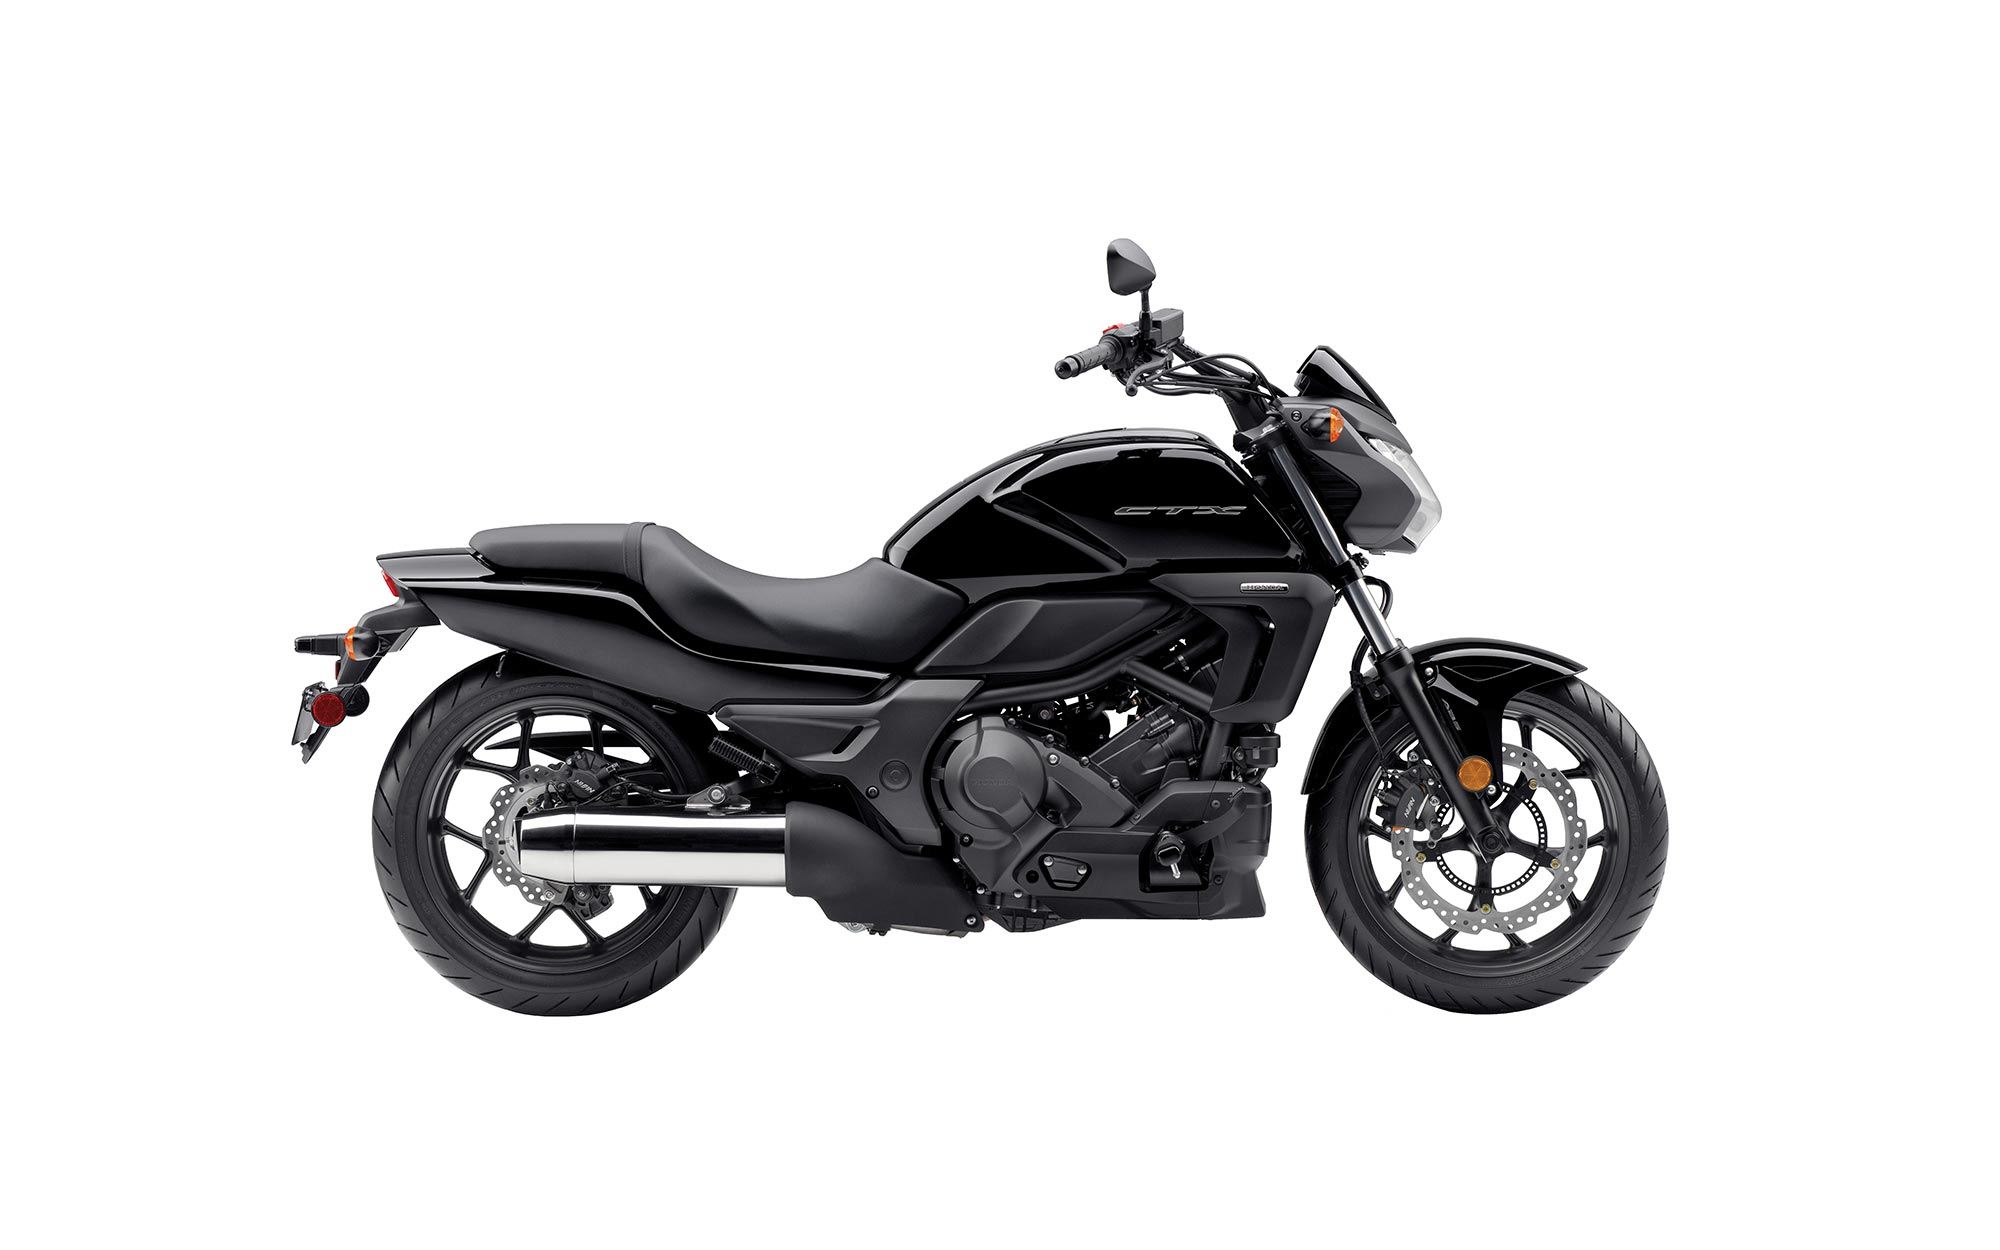 2014 honda ctx700 ctx700n coming soon asphalt rubber. Black Bedroom Furniture Sets. Home Design Ideas